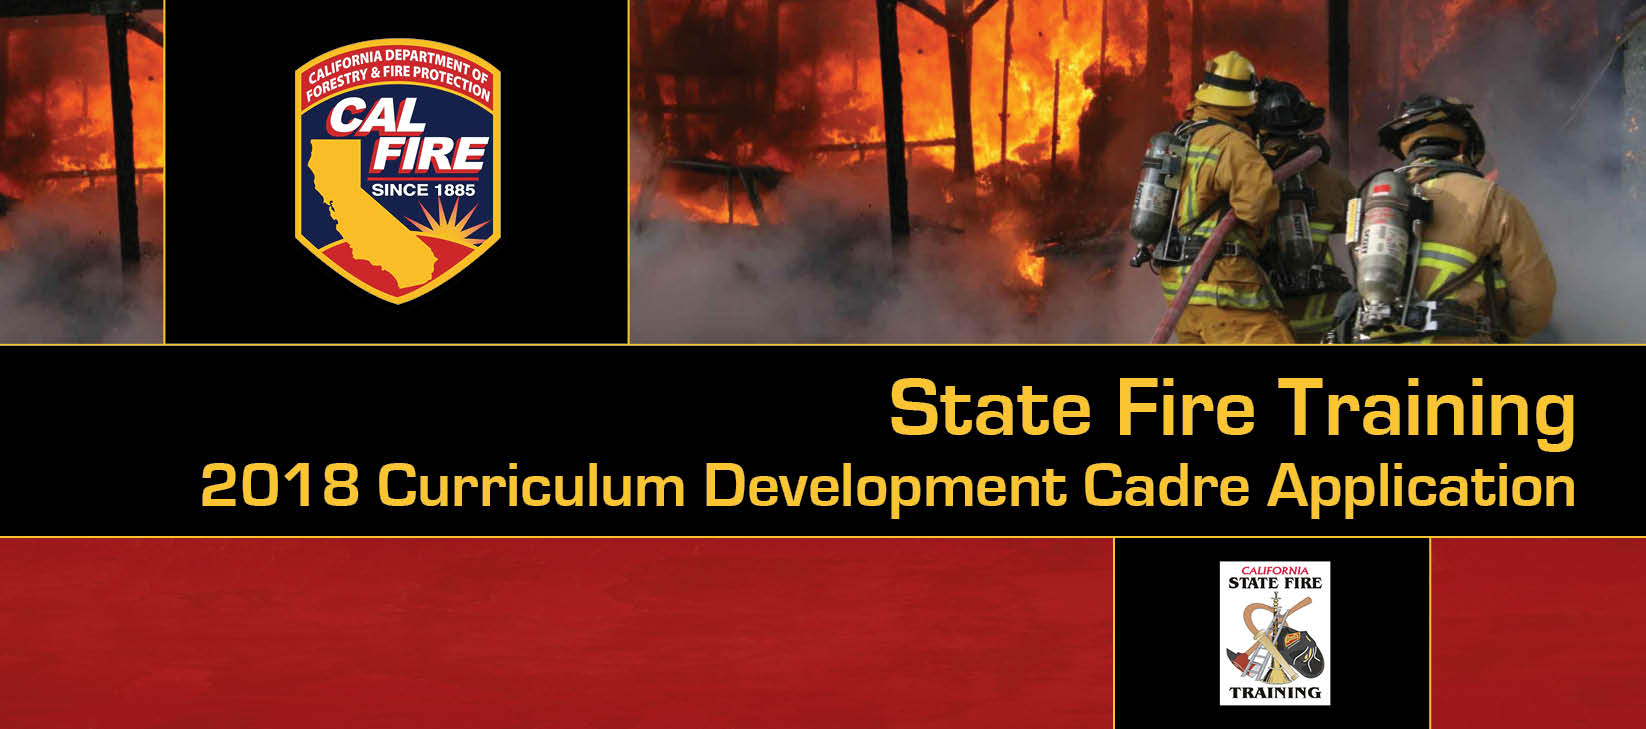 Water Rescue - Curriculum Development Cadre Application